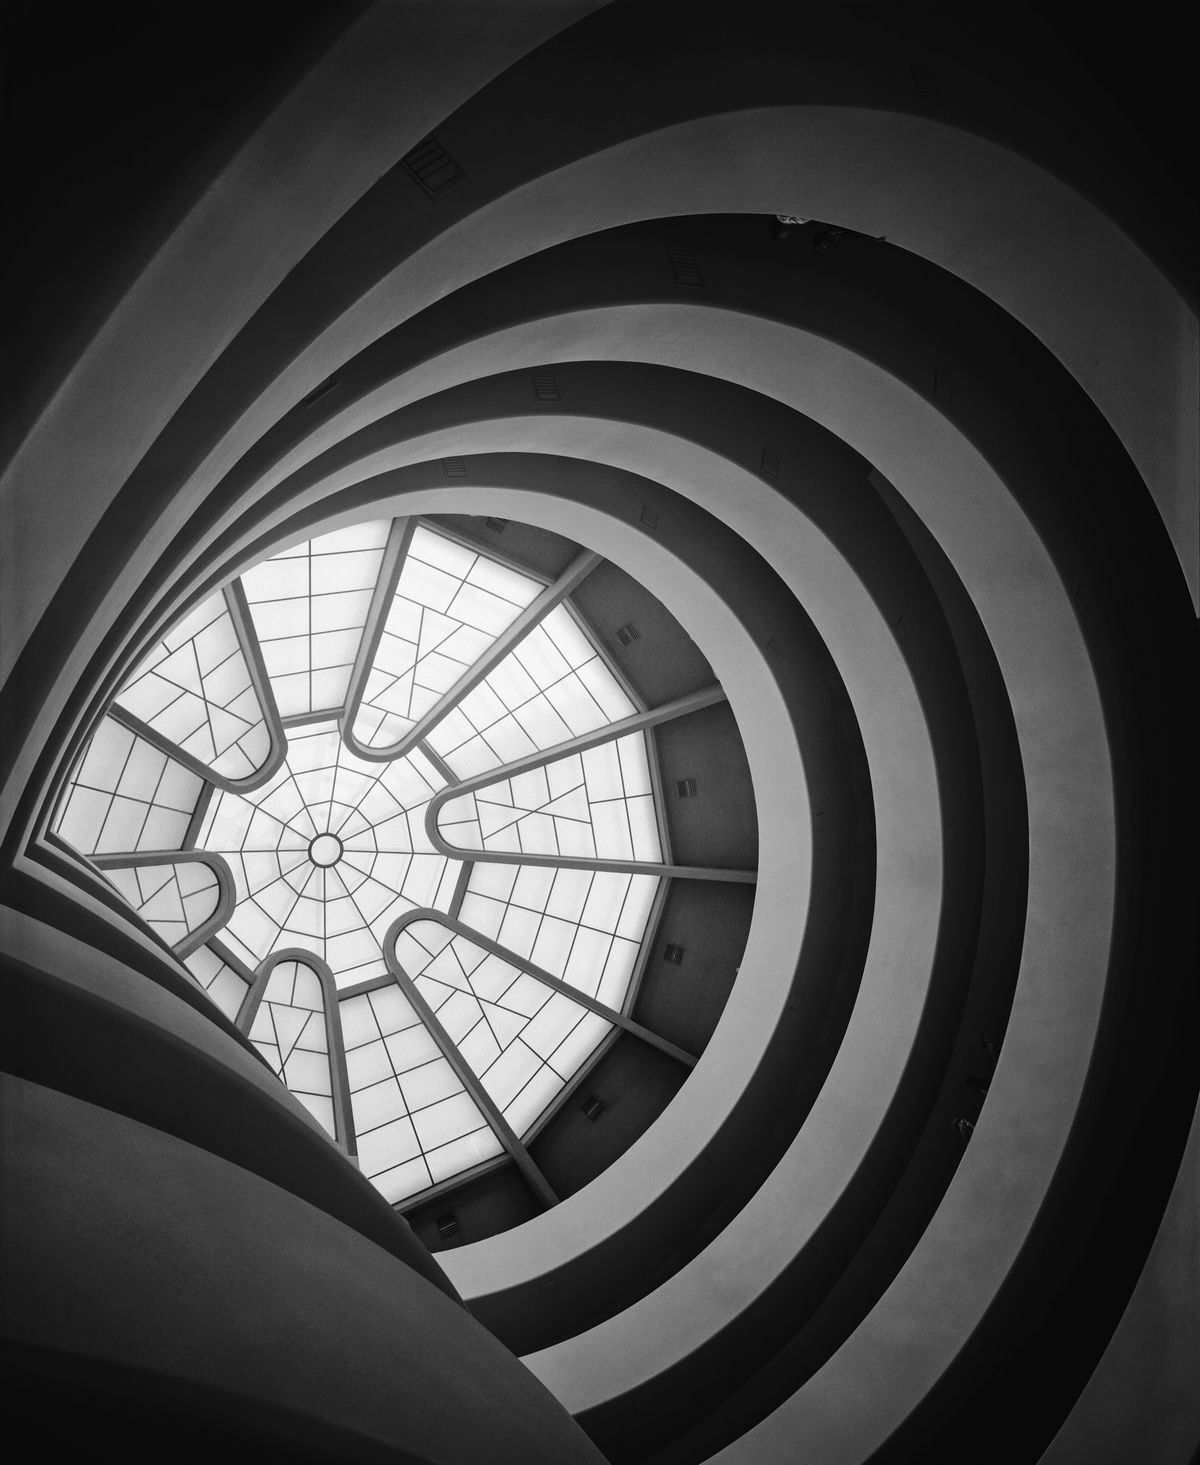 An image of the Guggenheim's spiral atrium looking upward to a skylight.